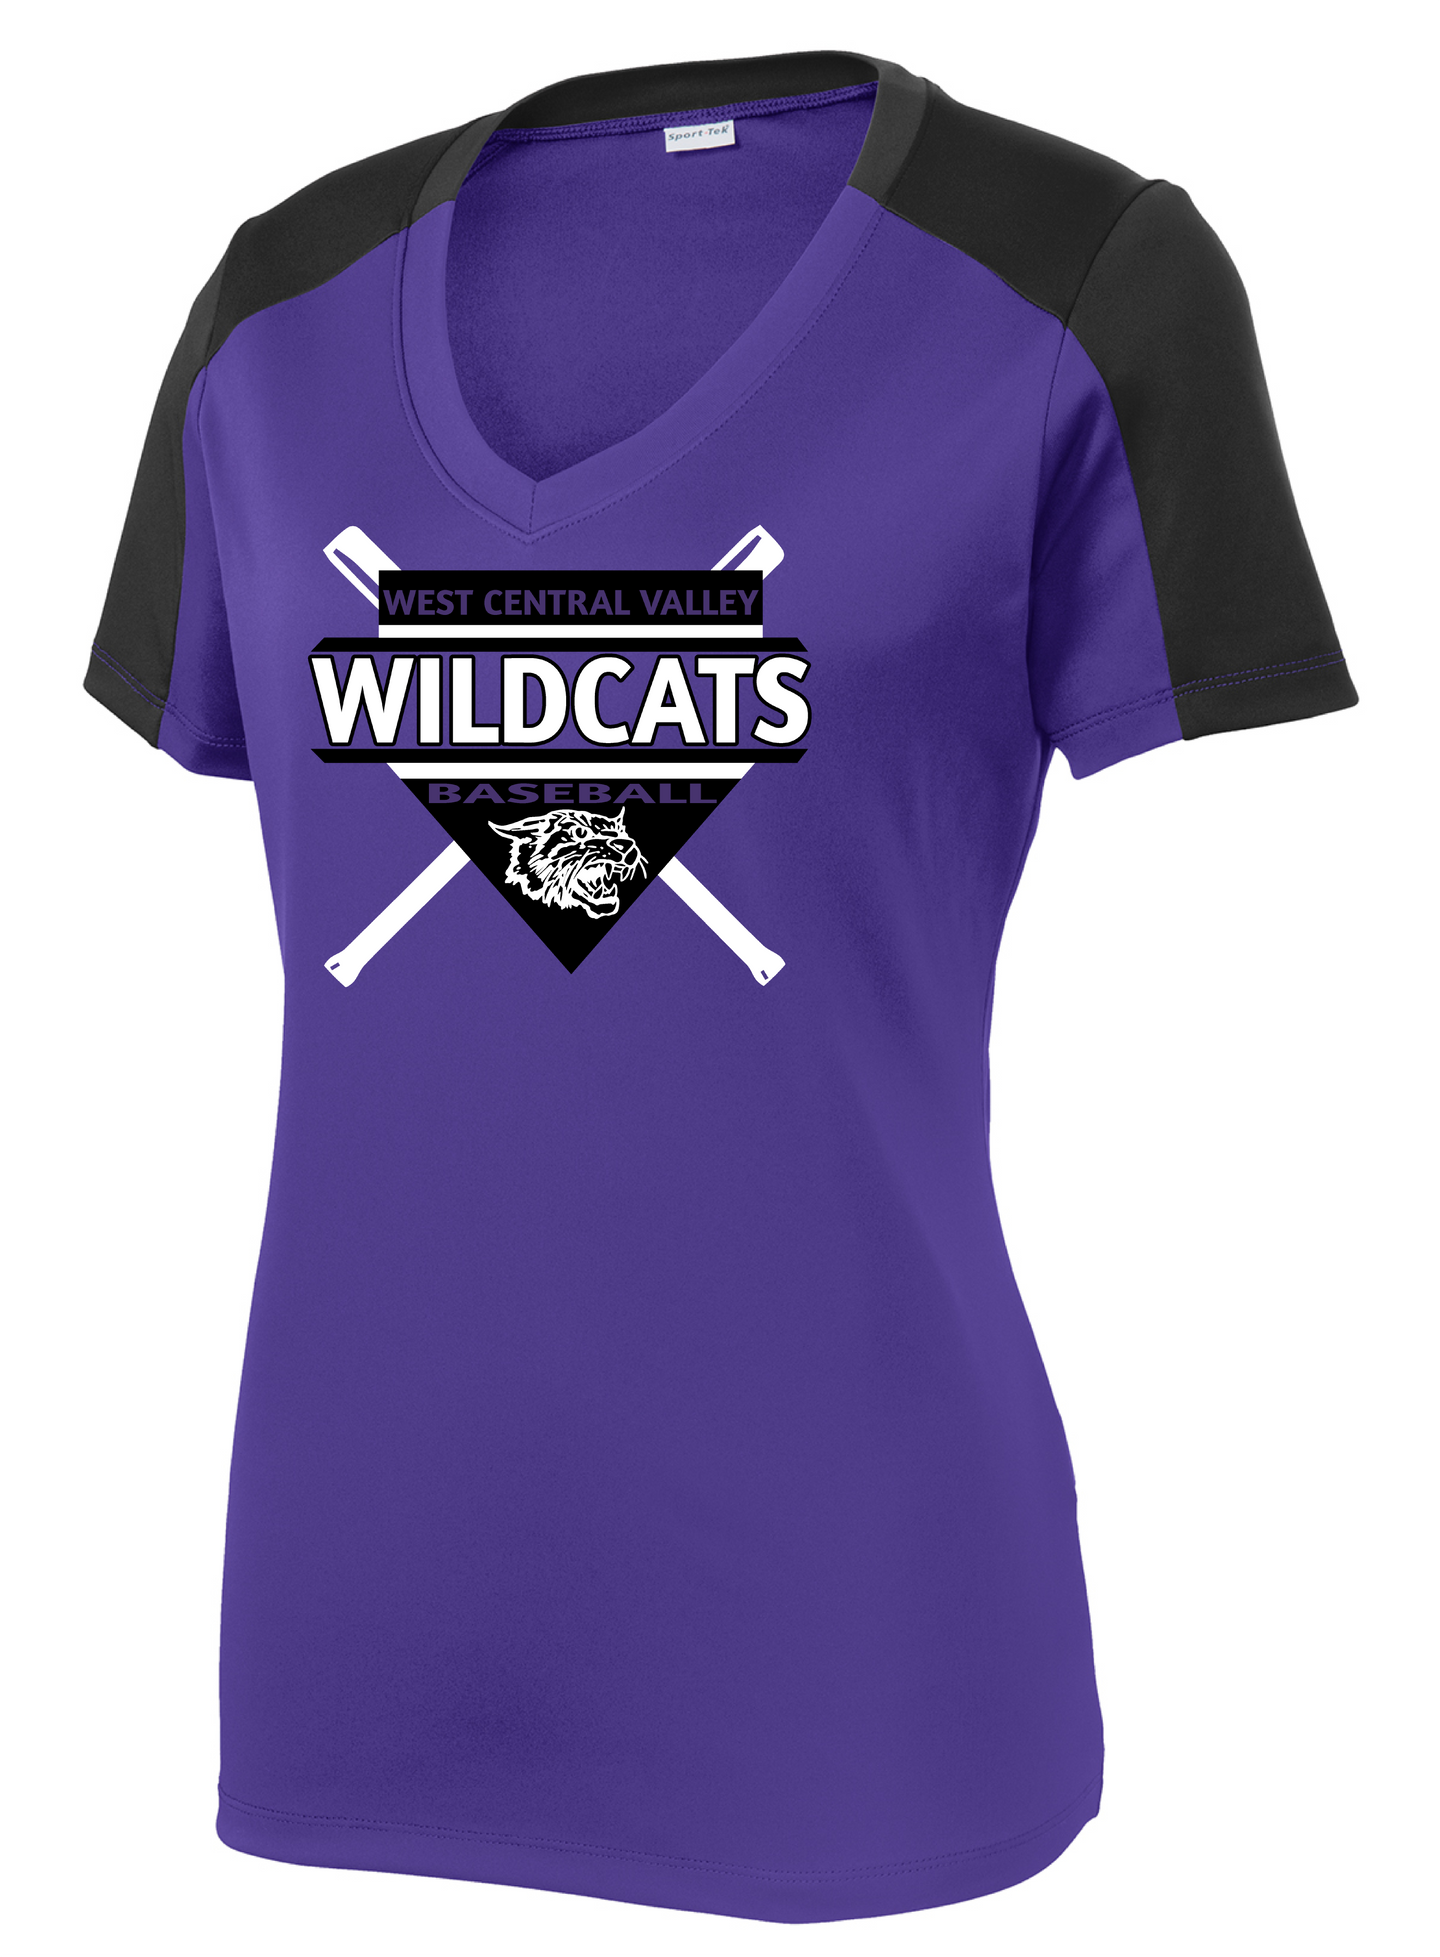 2020 WCV BASEBALL-Sport-Tek® Ladies PosiCharge® Competitor™ Sleeve-Blocked V-Neck Tee